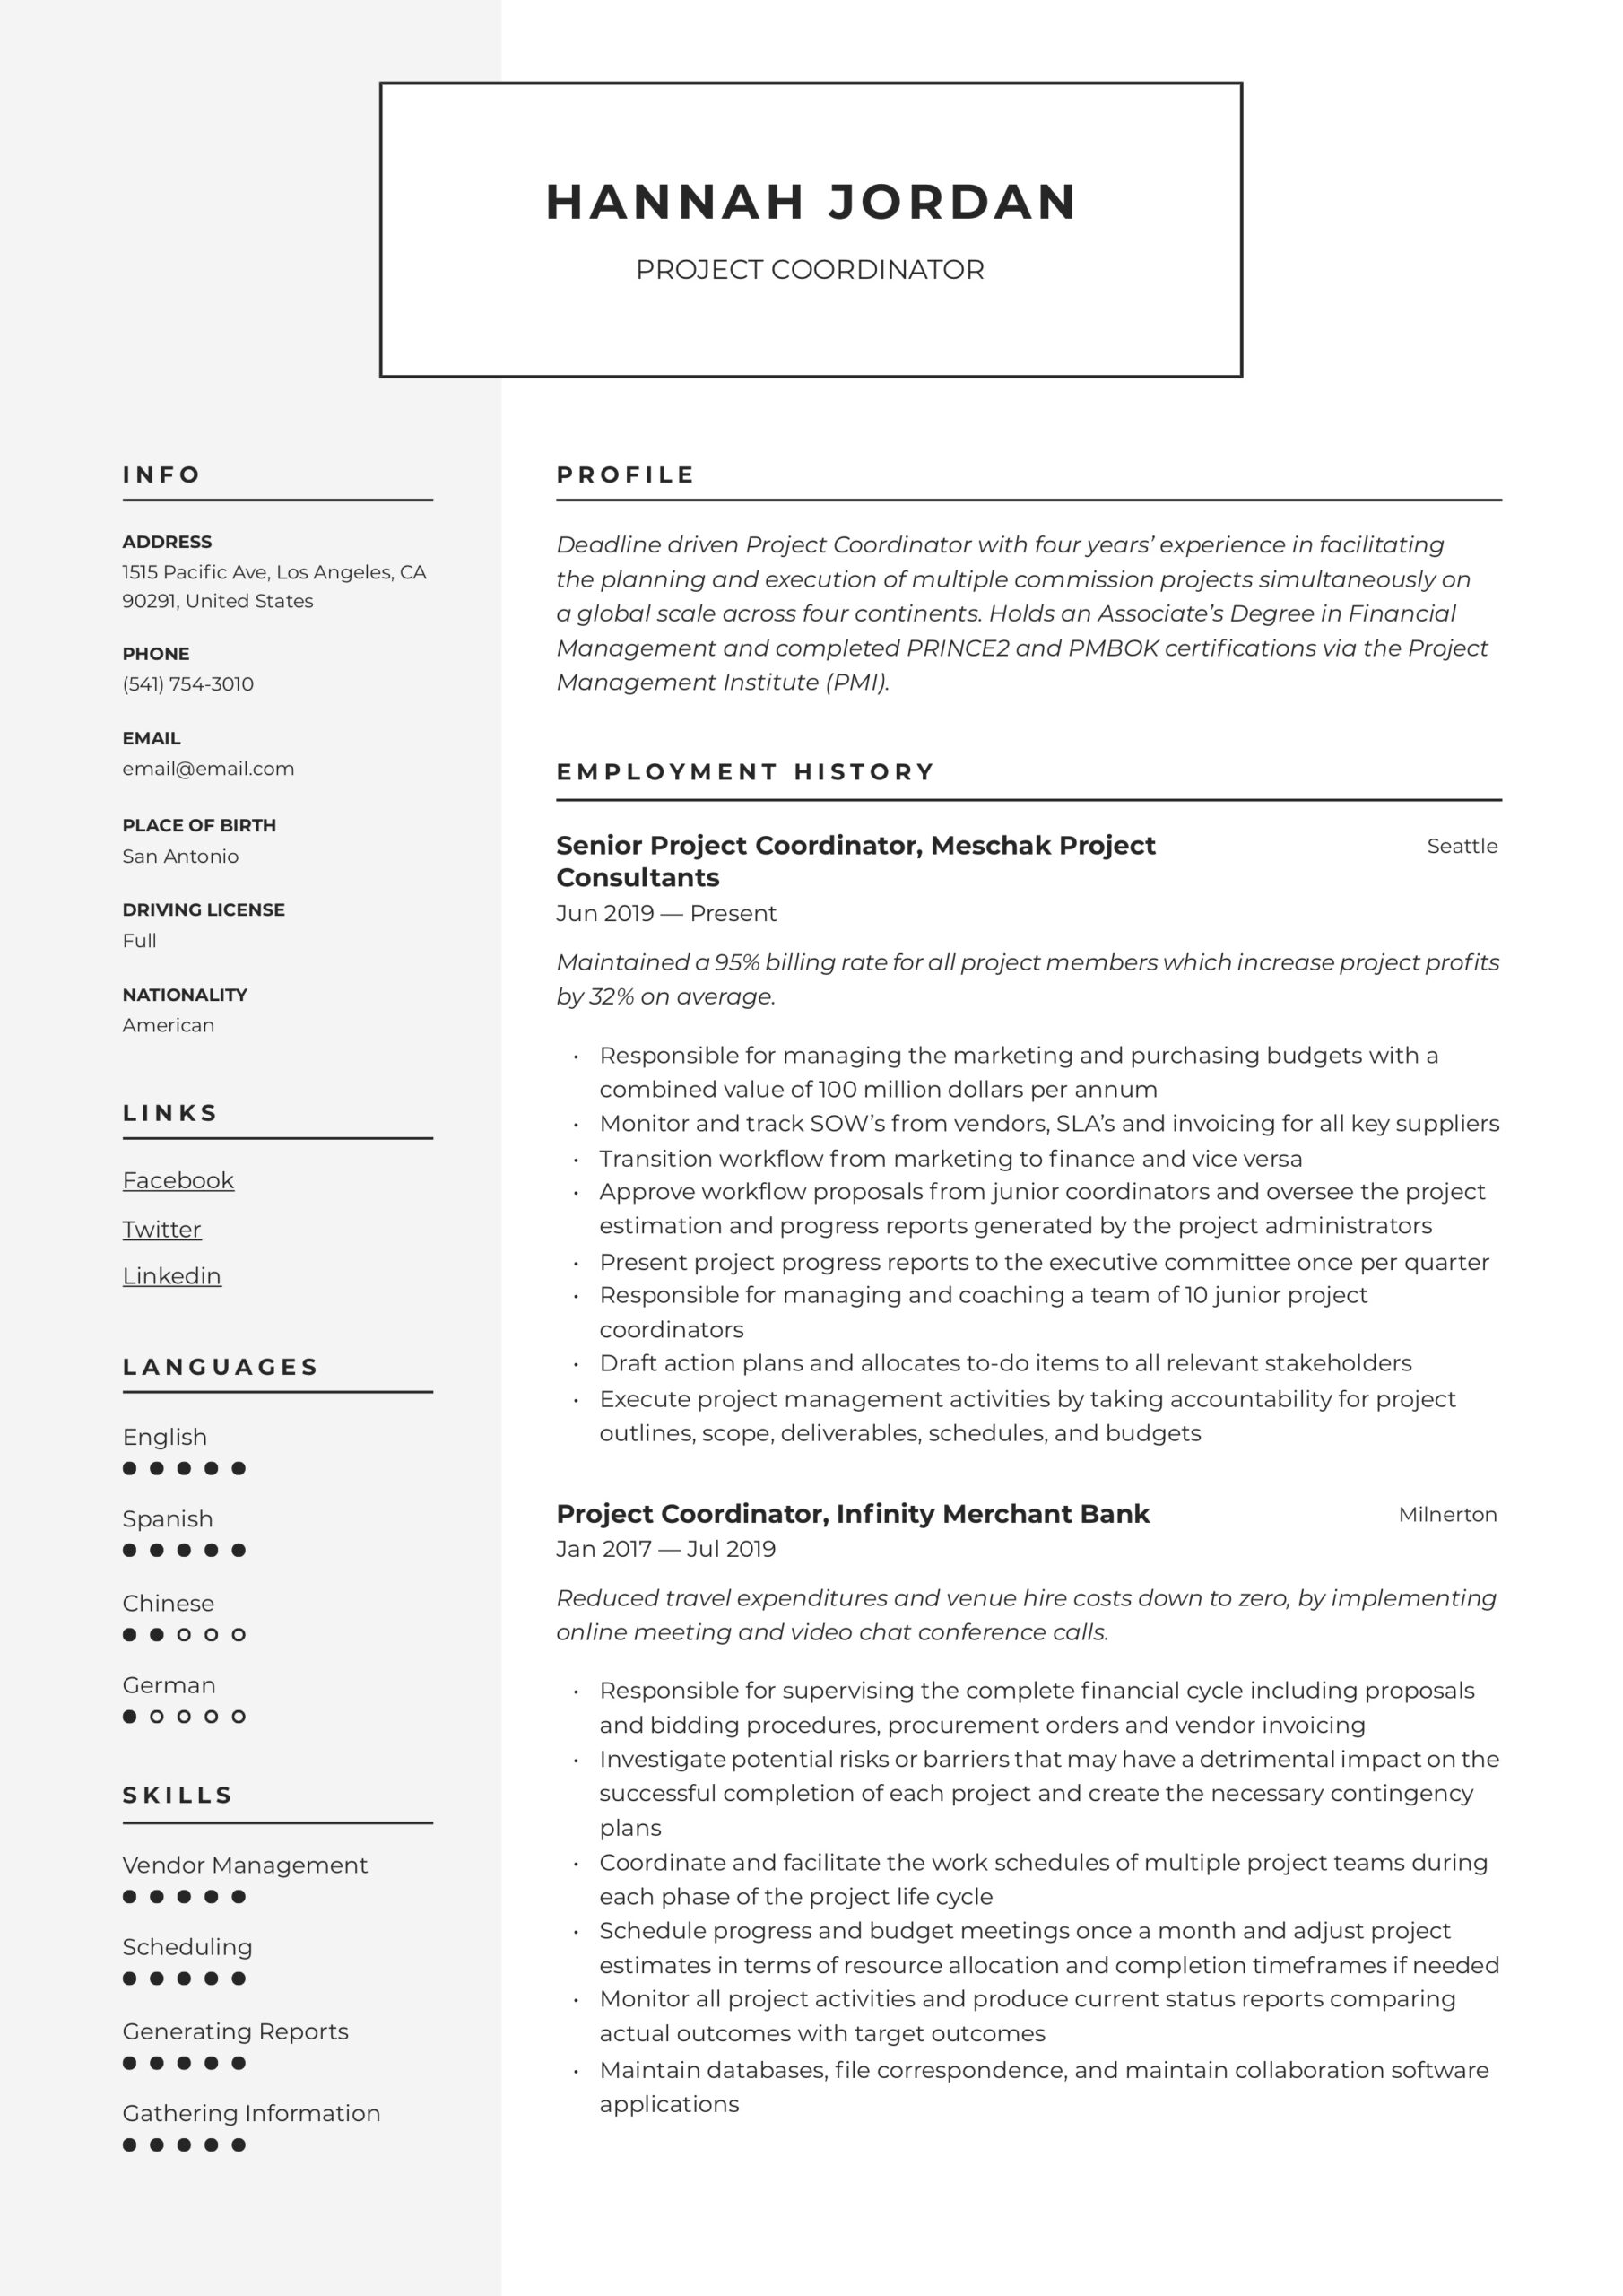 project coordinator resume writing guide examples for data quality manager manufacturing Resume Resume Examples For Project Coordinator